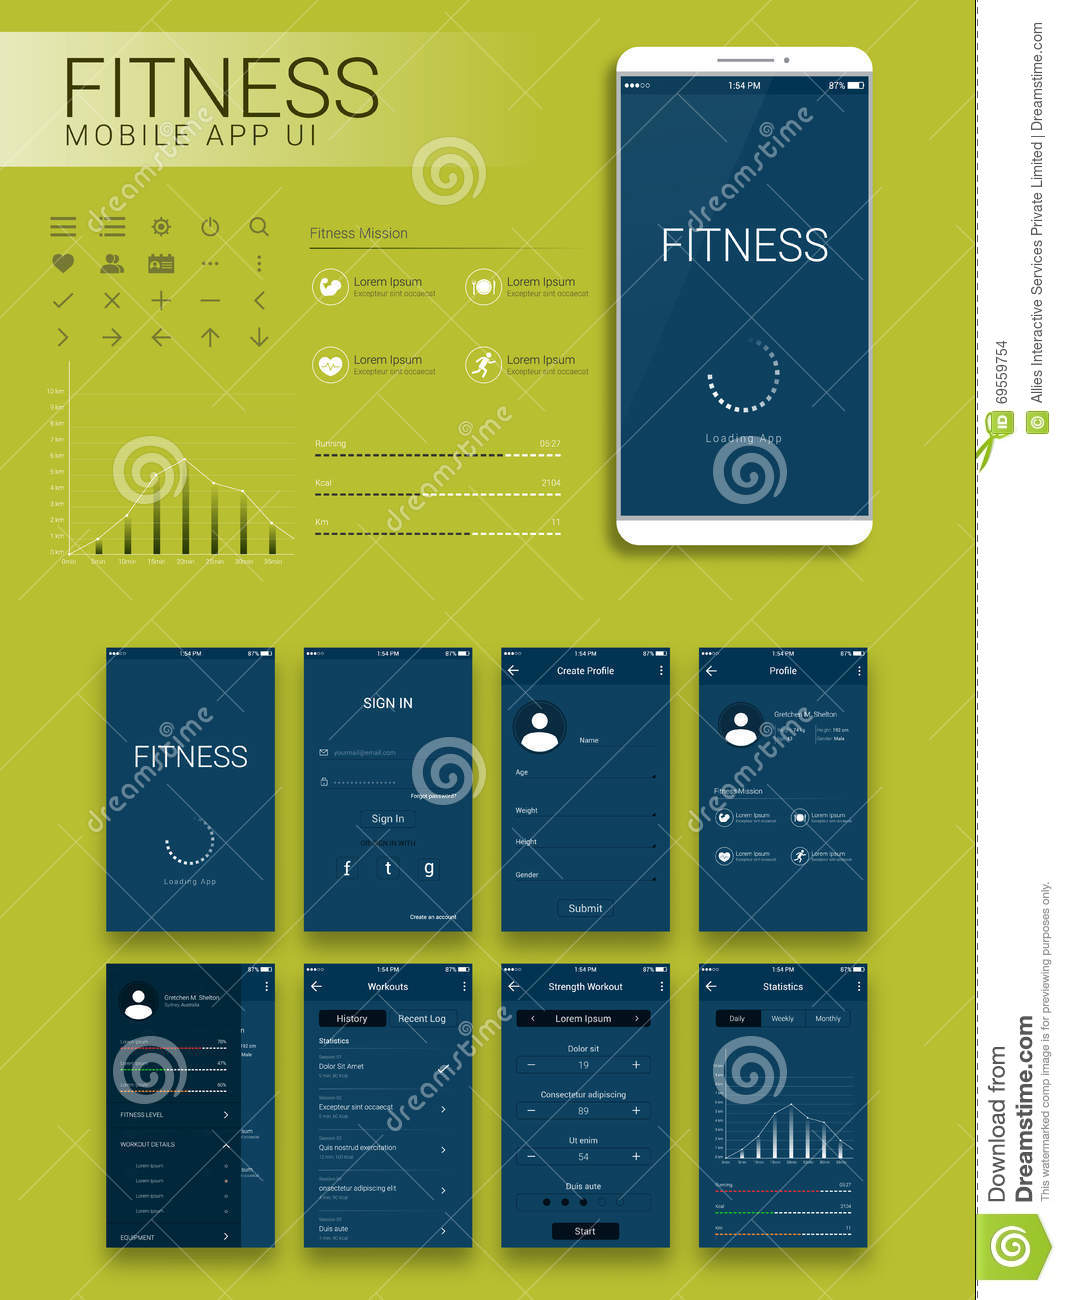 Fitness Mobile App Material Design Ui Ux And Gui Stock